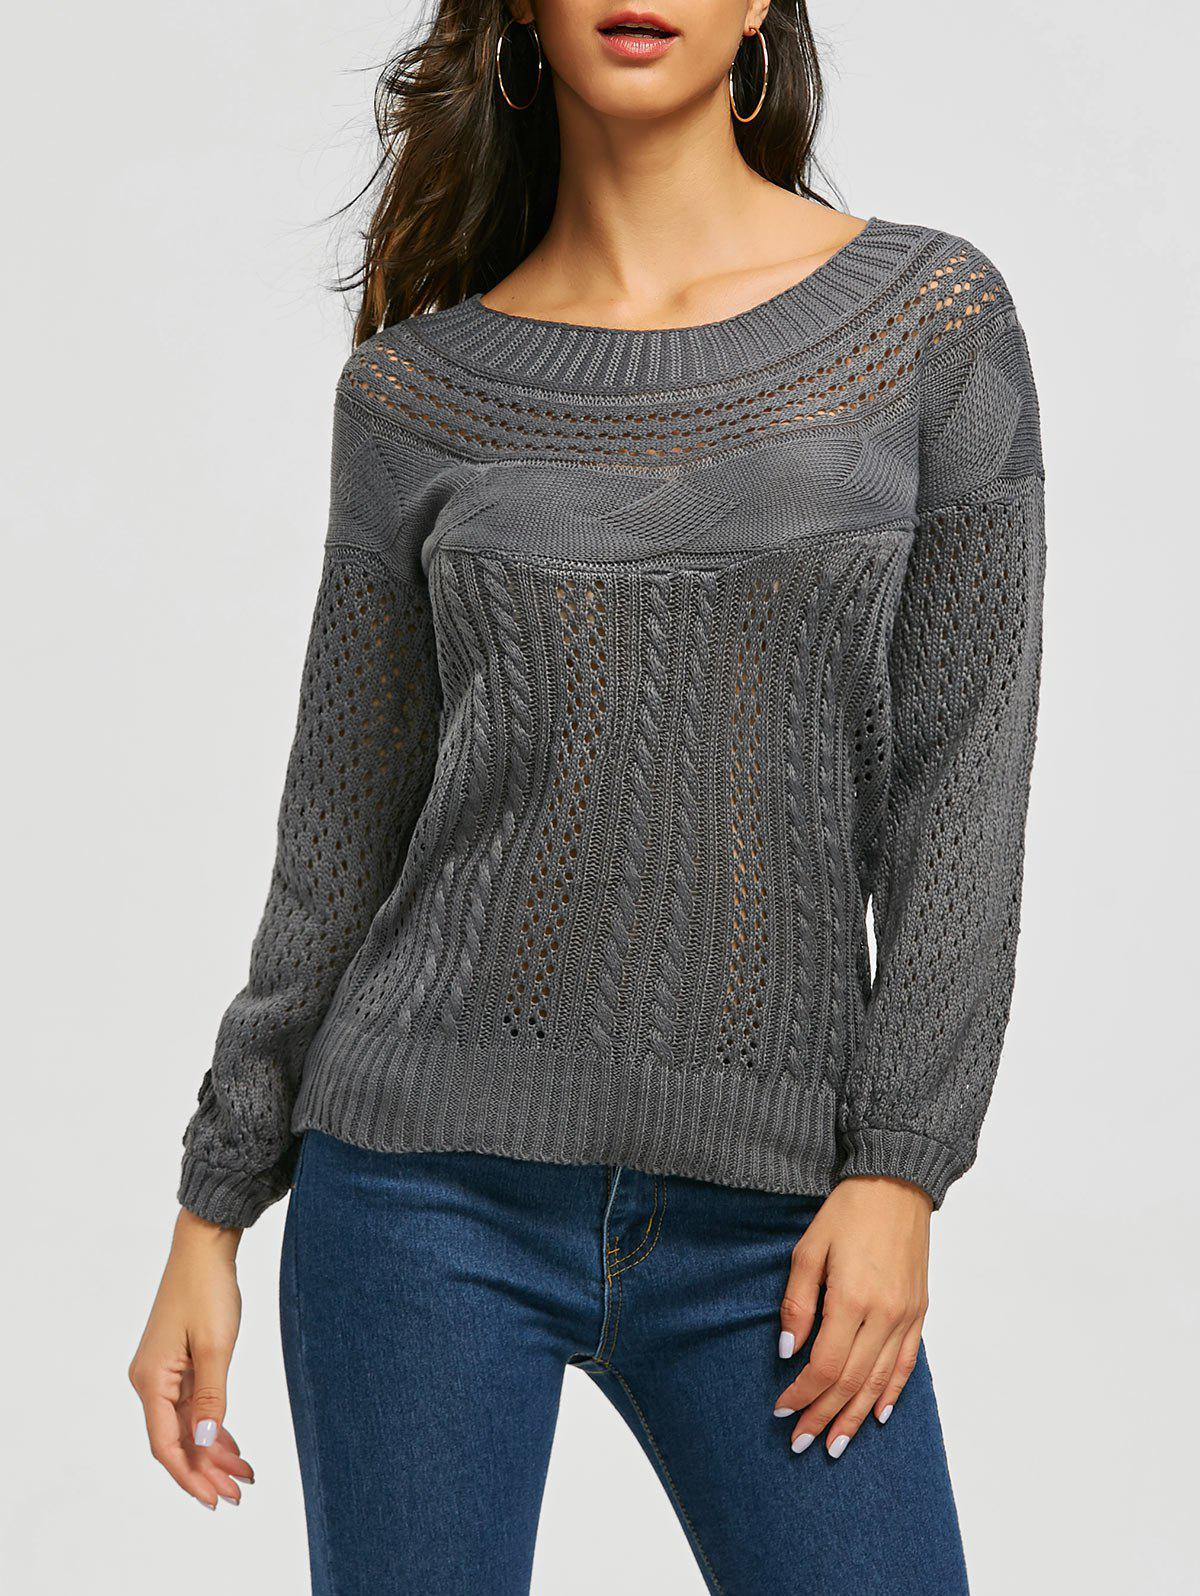 Chic Boat Neck Long Sleeve Pure Color Womens SweaterWOMEN<br><br>Size: M; Color: GRAY; Type: Pullovers; Material: Acrylic; Sleeve Length: Full; Collar: Boat Neck; Style: Fashion; Weight: 0.4590kg; Package Contents: 1 x Sweater;